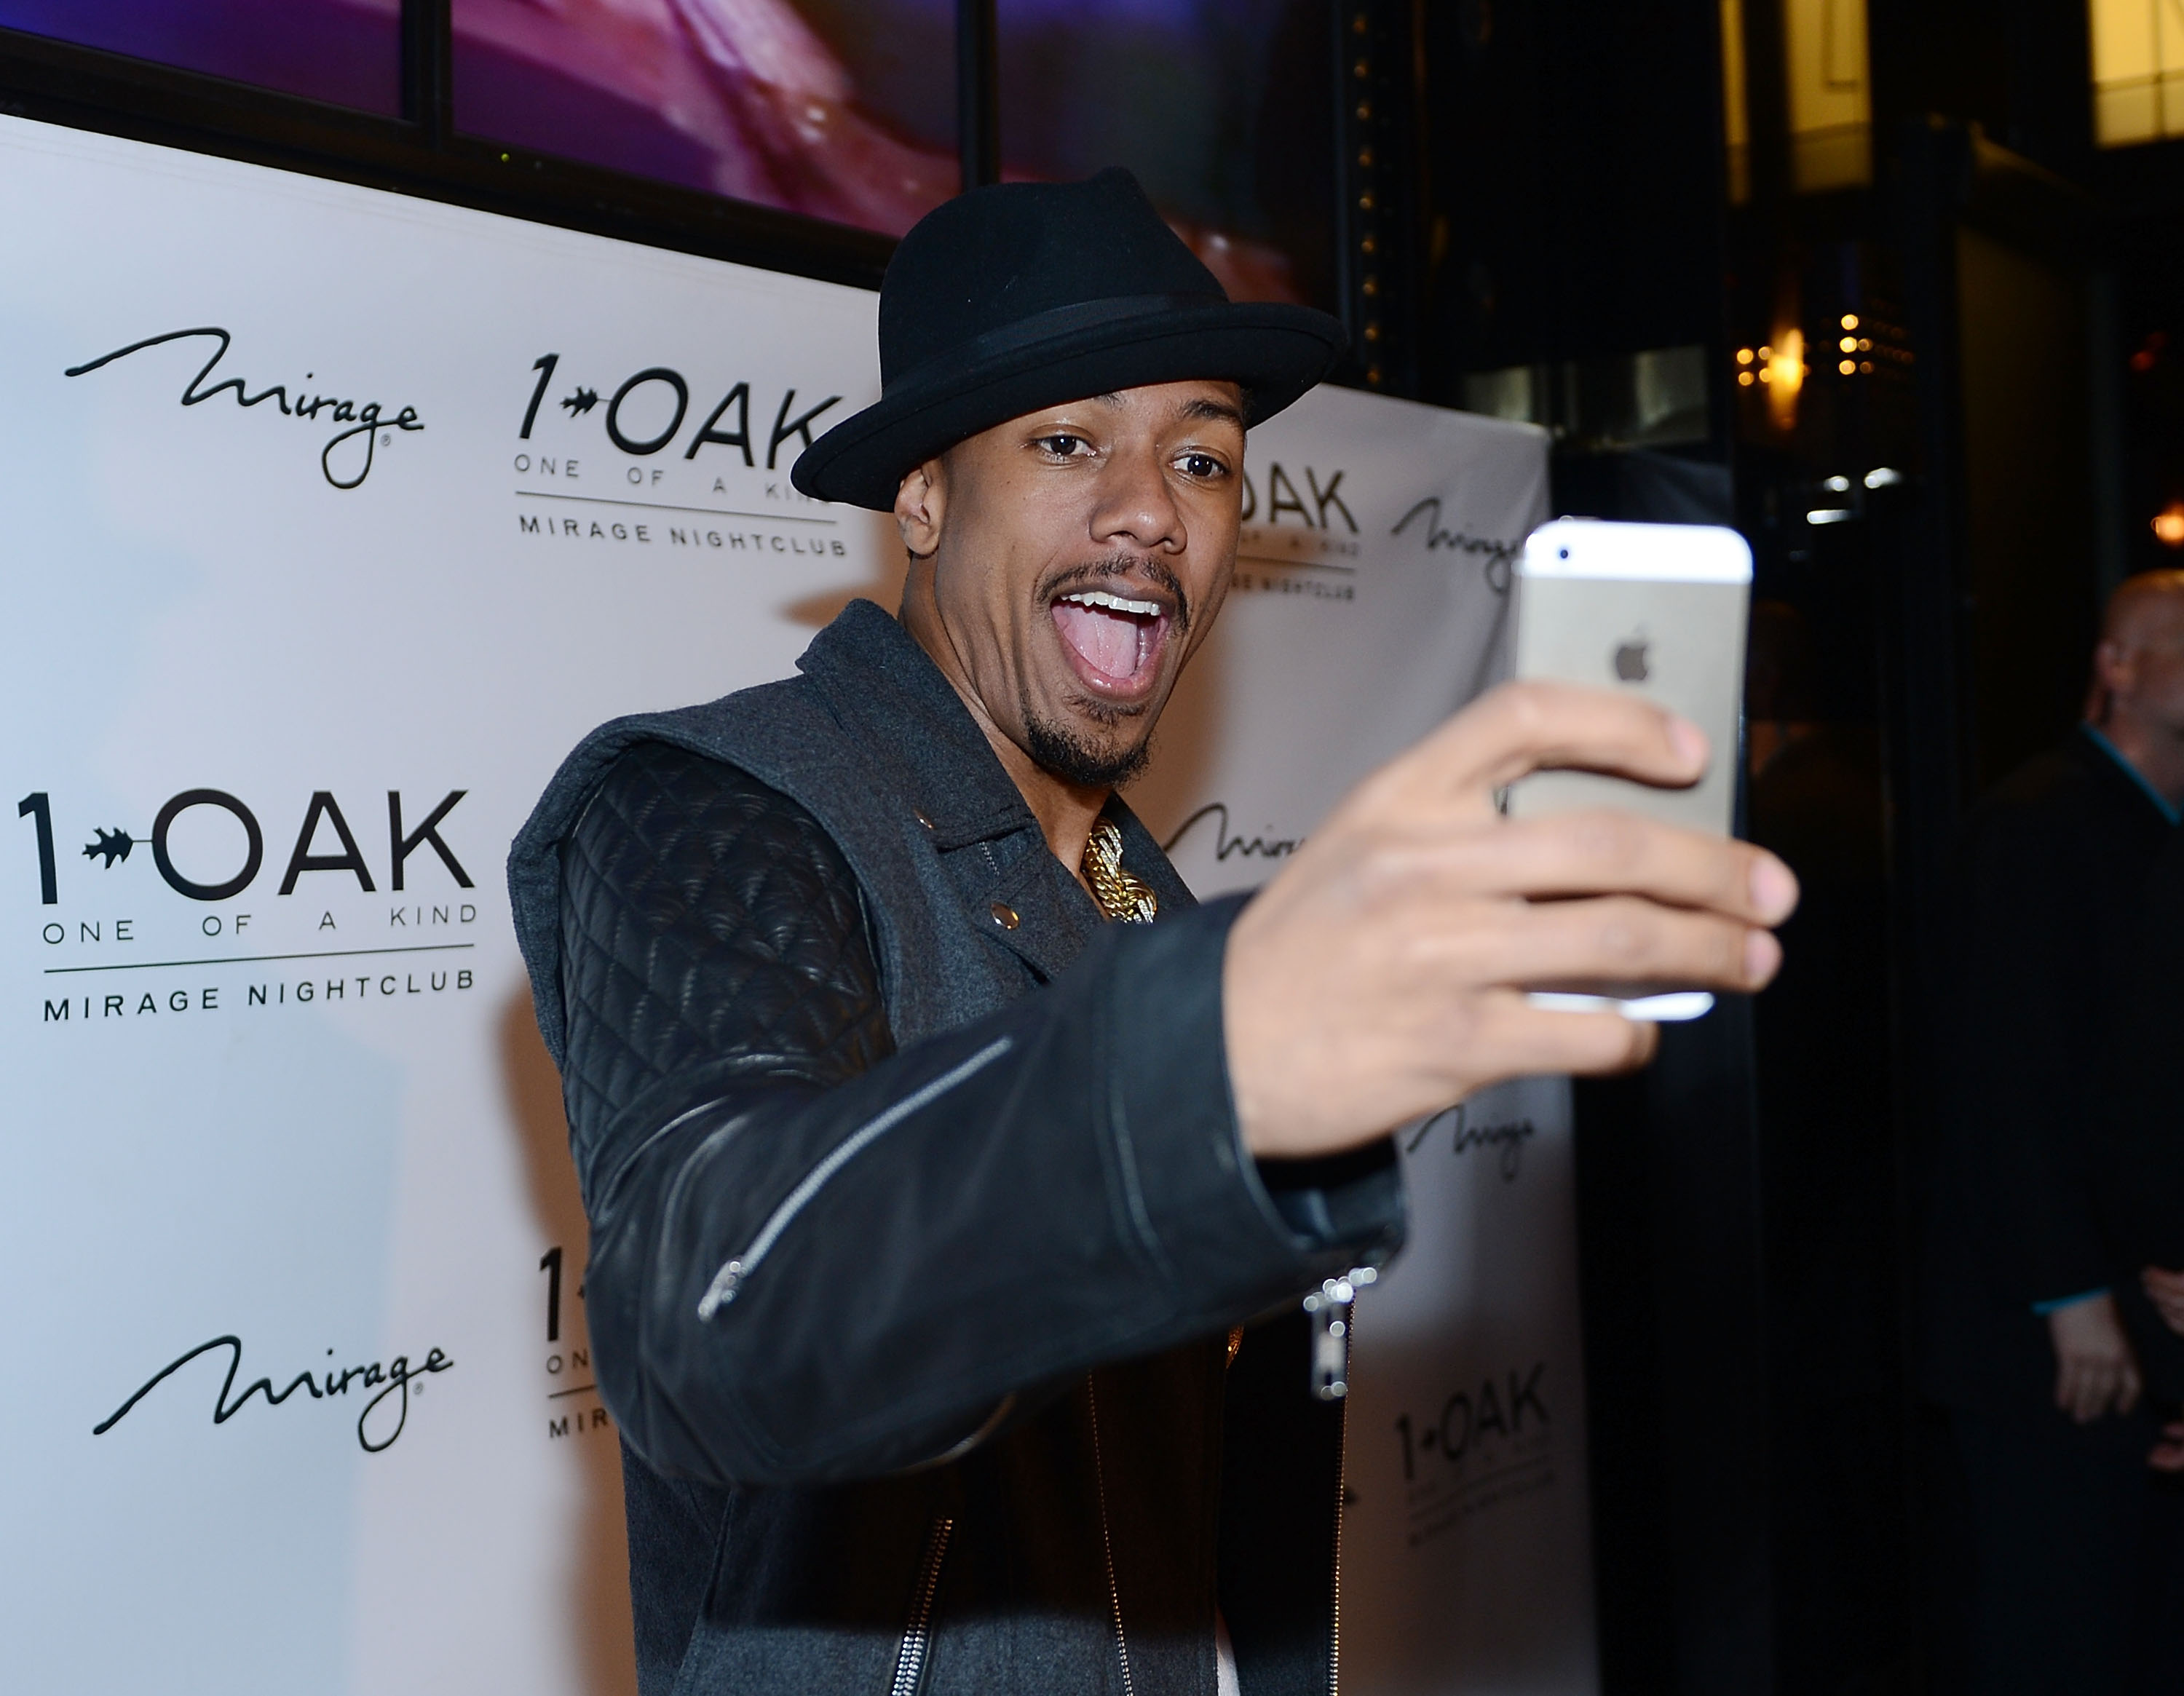 Vegas sightings nick cannon and robin thicke take over 1 oak and nick cannon djs at 1 oak nightclub at the mirage nvjuhfo Image collections